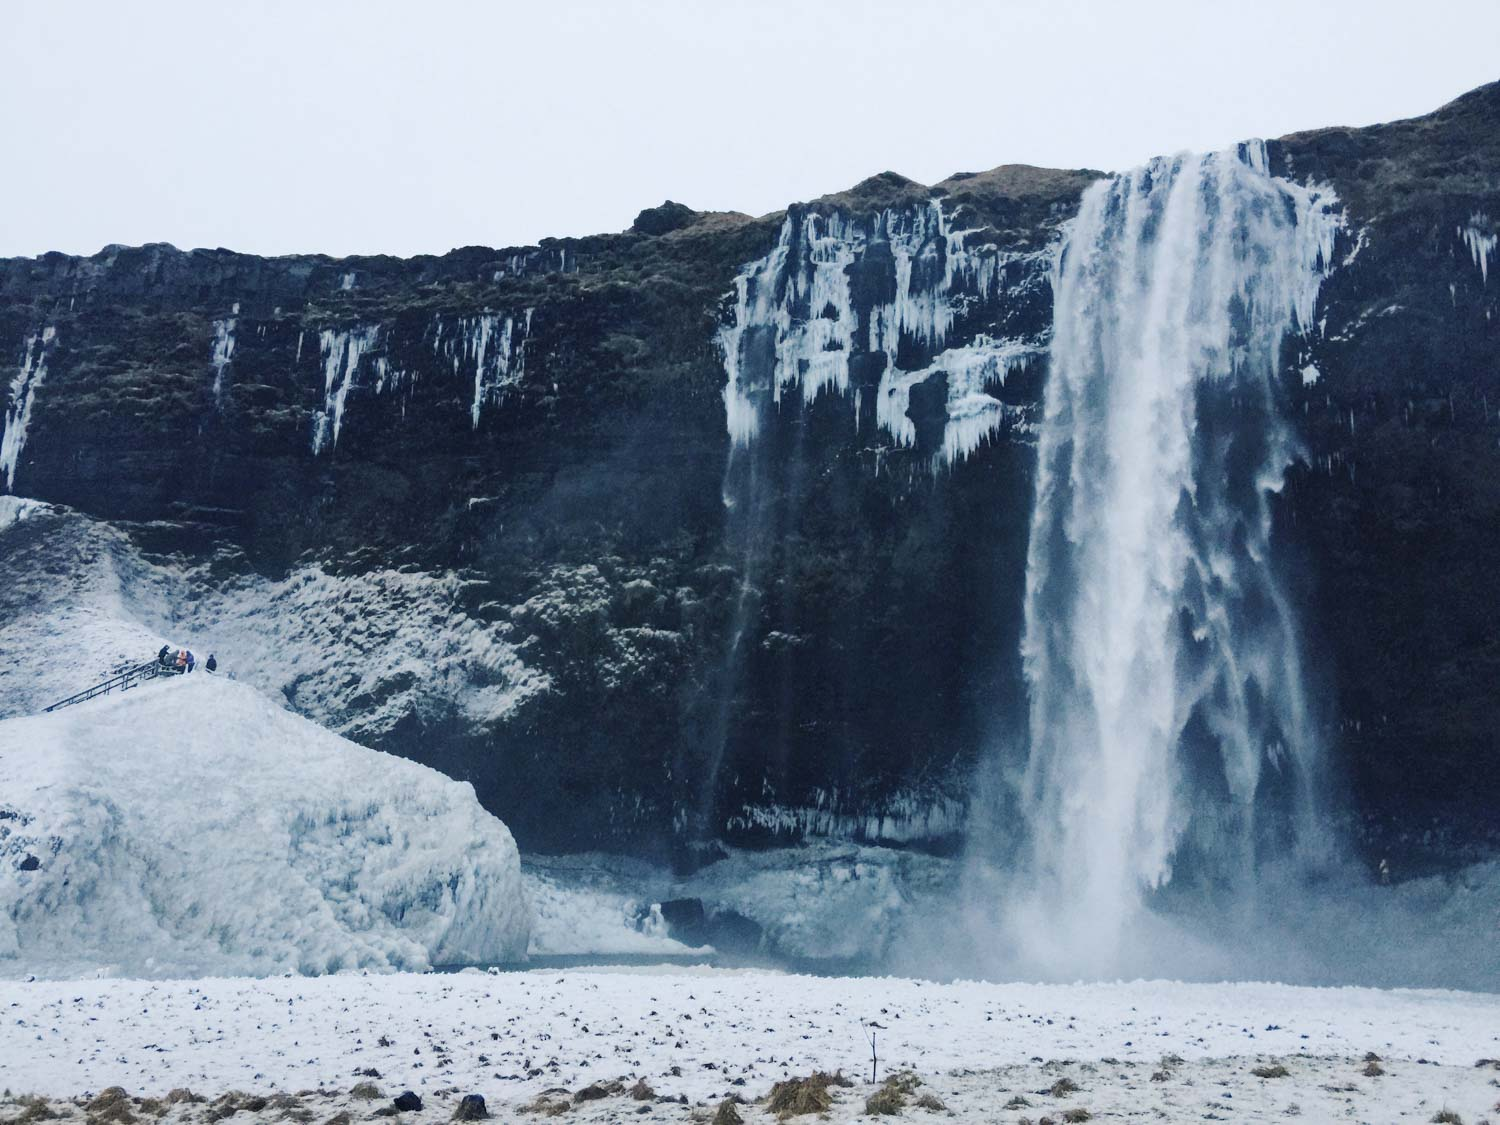 Seljandfoss waterfall - Iceland itinerary 5 days